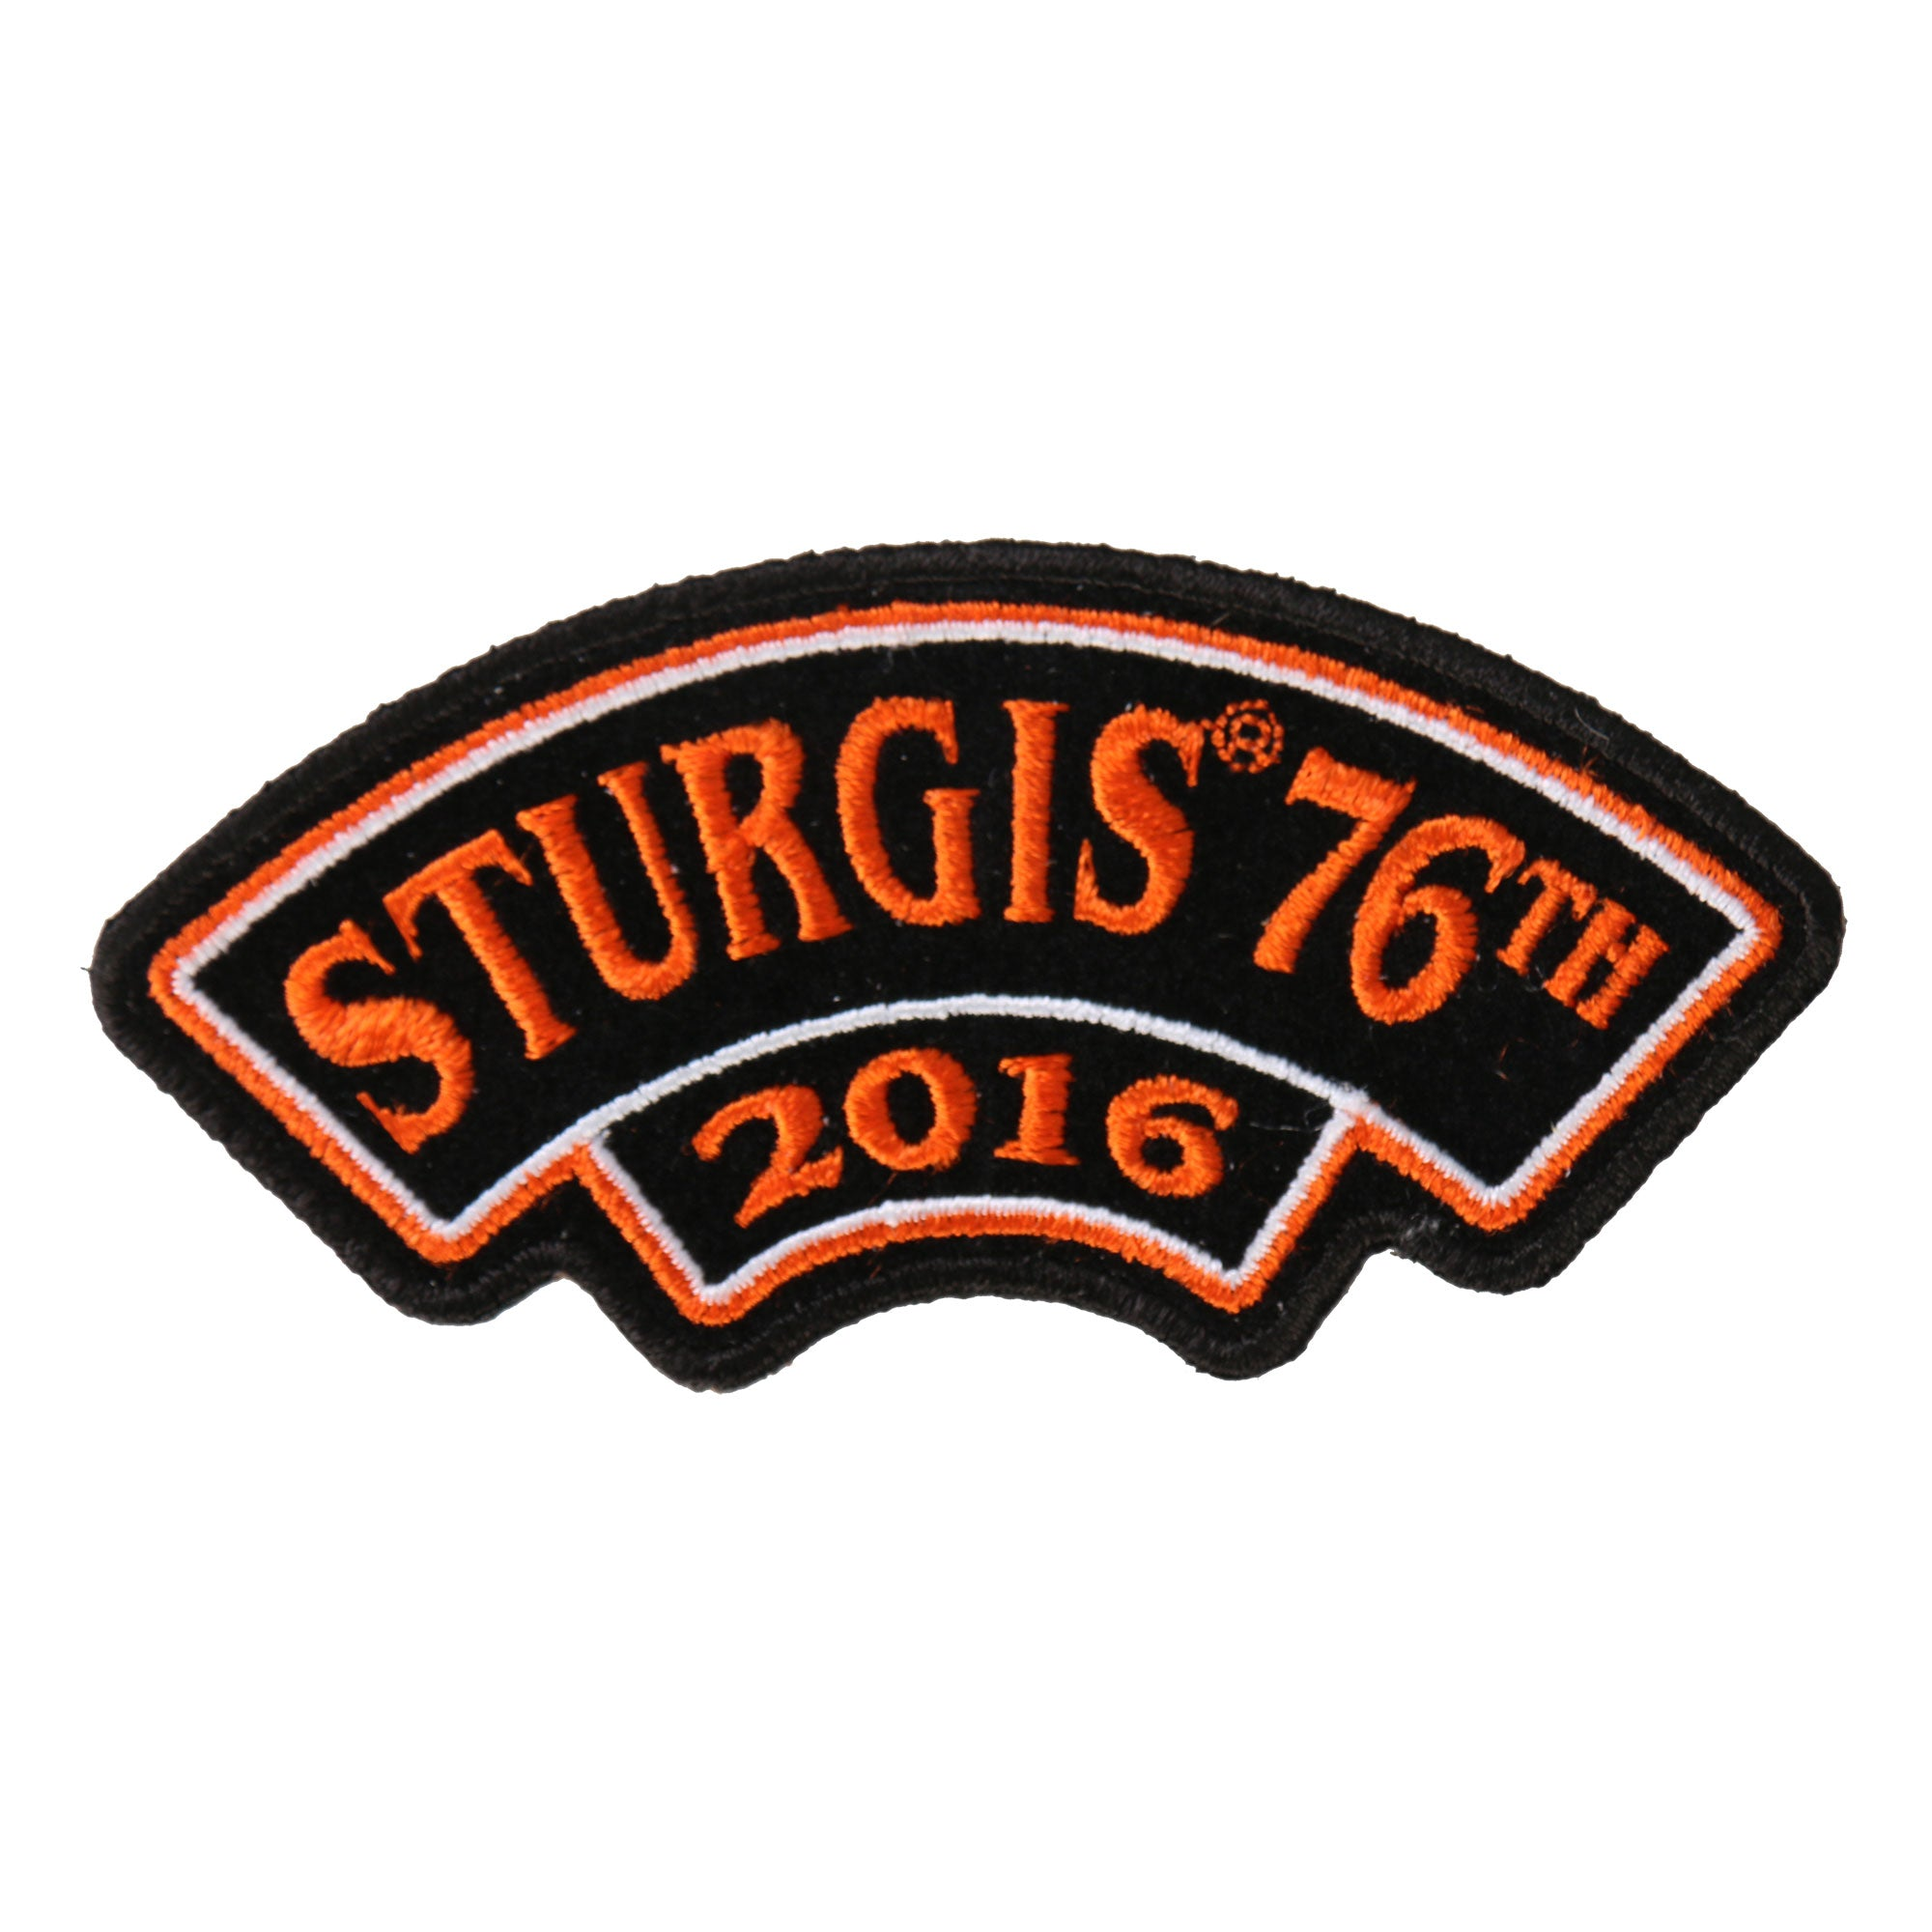 Official 2016 Sturgis Motorcycle Rally Rocker Patch